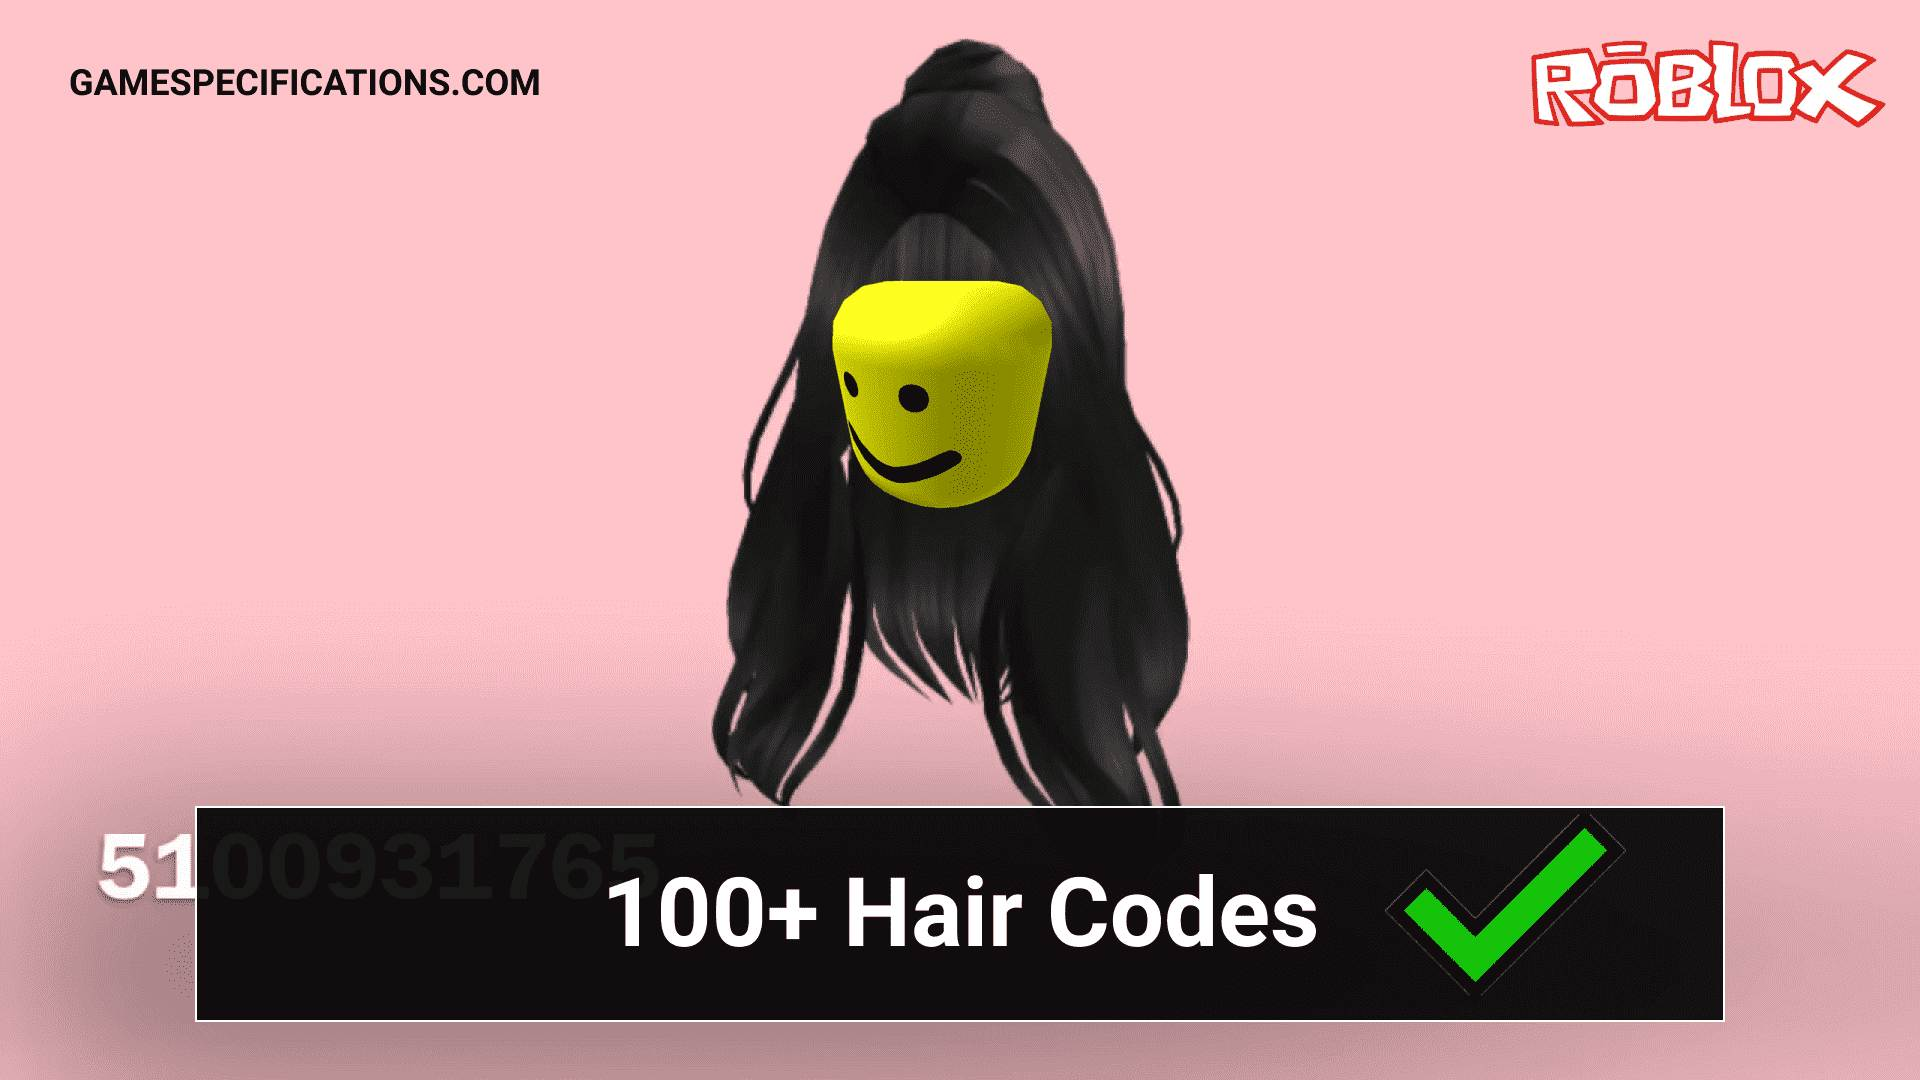 10+ Popular Roblox Hair Codes - Game Specifications